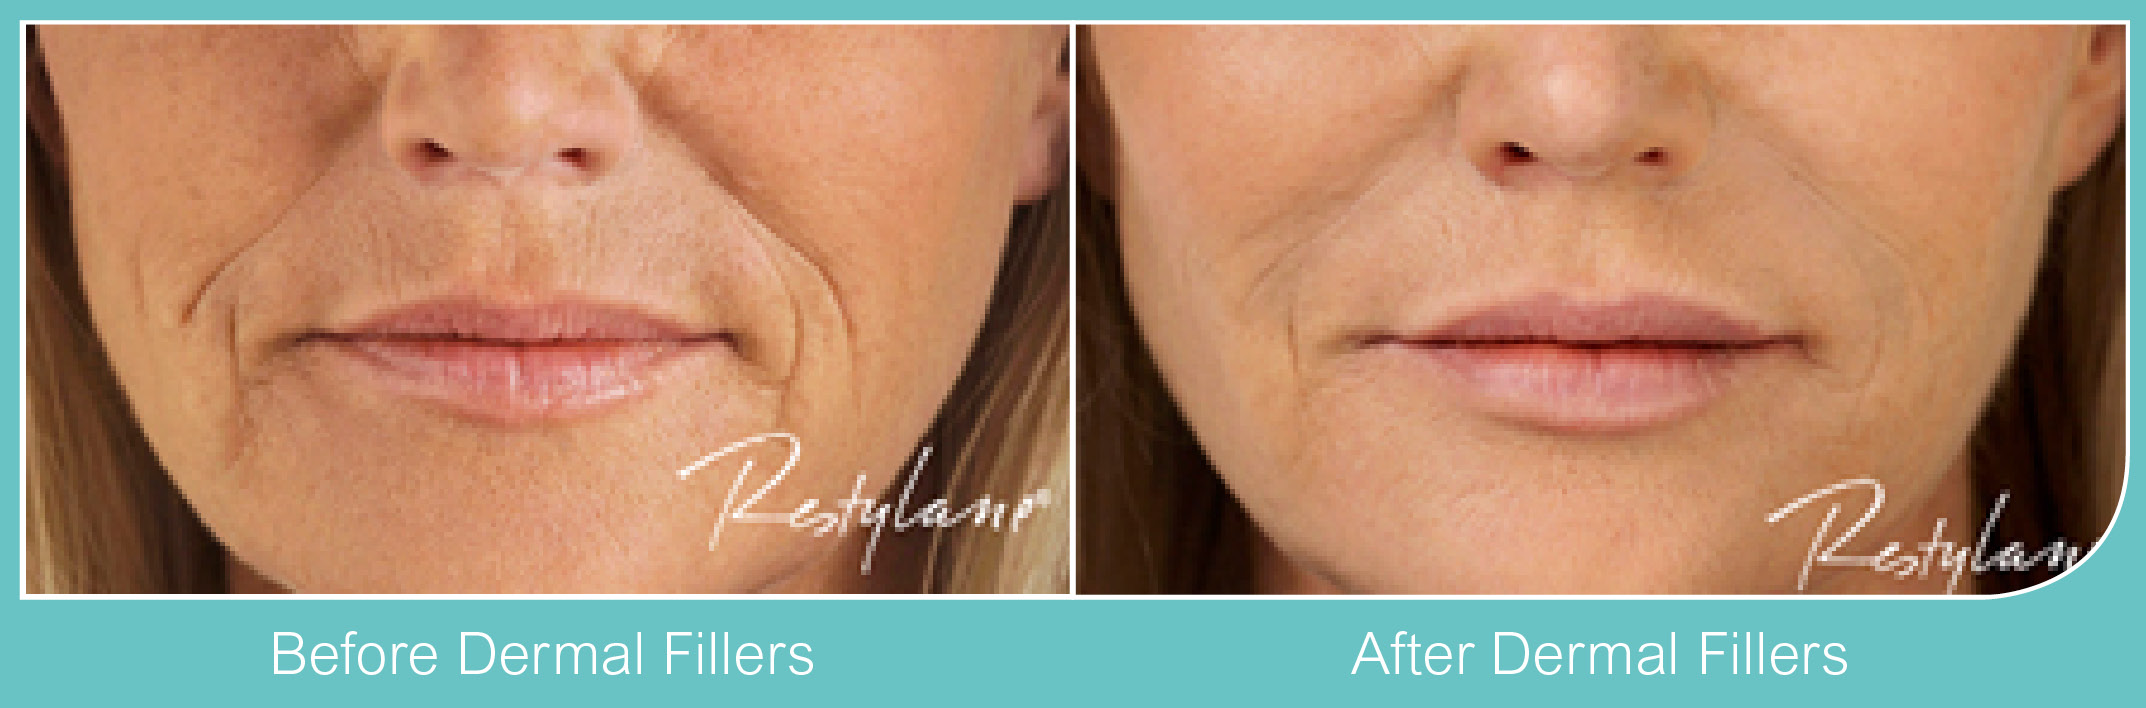 Dermal Fillers Lip Fillers Acton, Chiswick, London